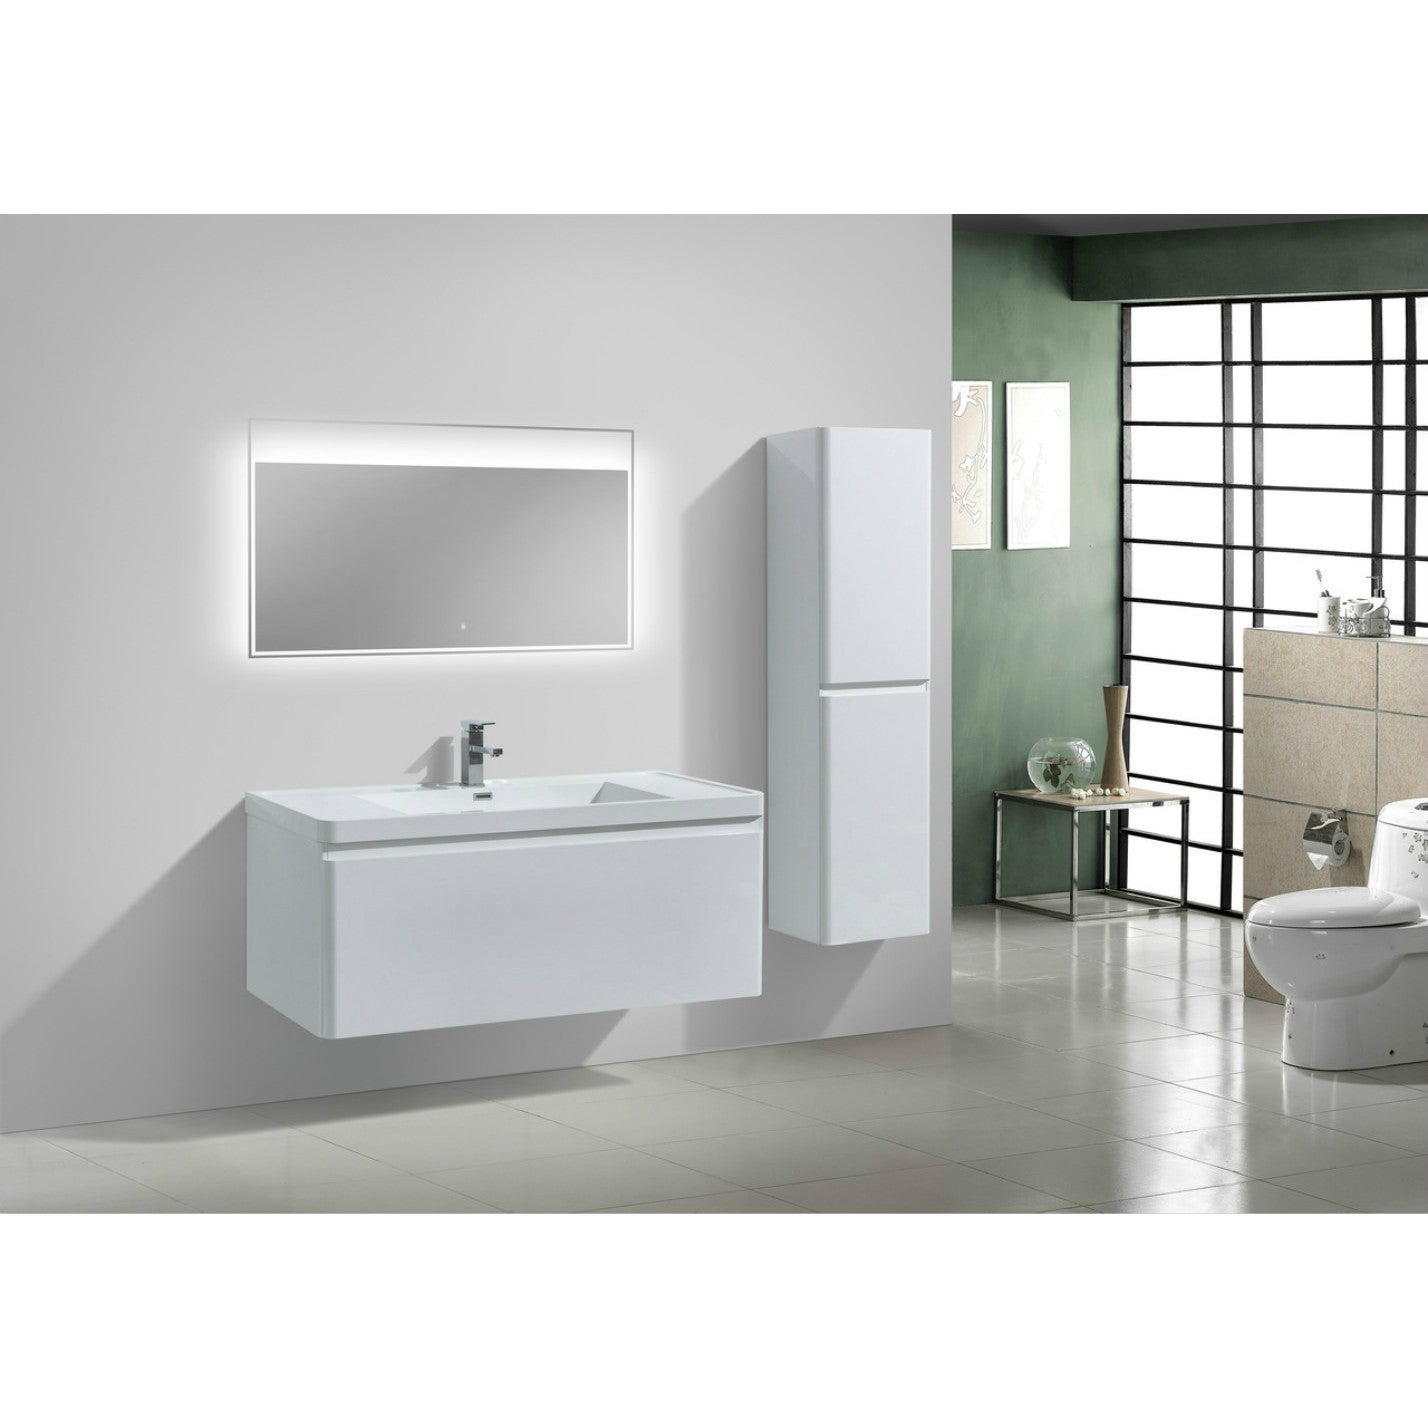 Moreno Smile Modern Acrylic Sink 2 Drawer 48 Inch Single Bathroom Vanity